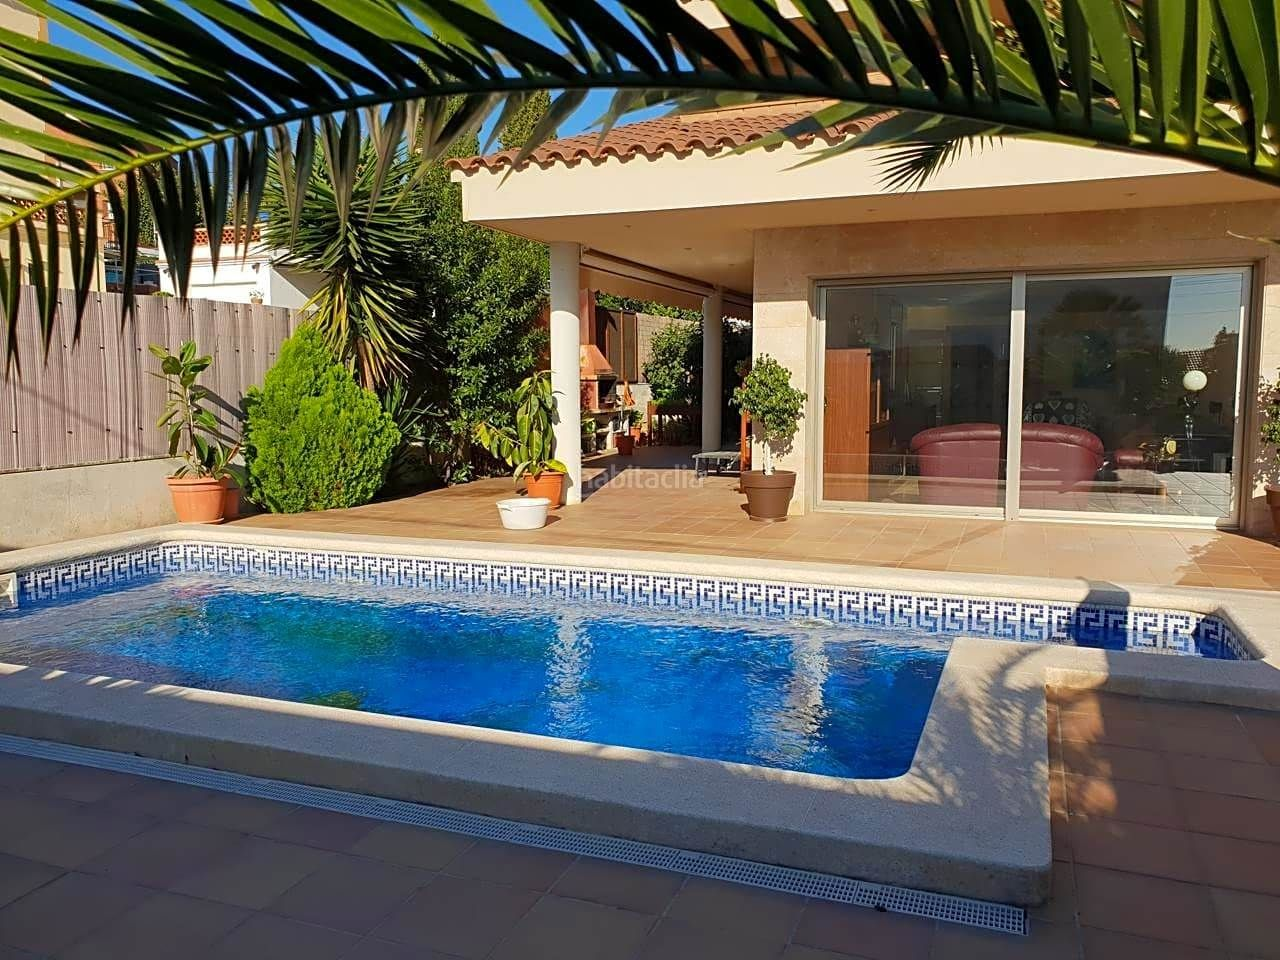 House in Torrent Ballester. Casa / chalet en venta en viladecans de 442 m2